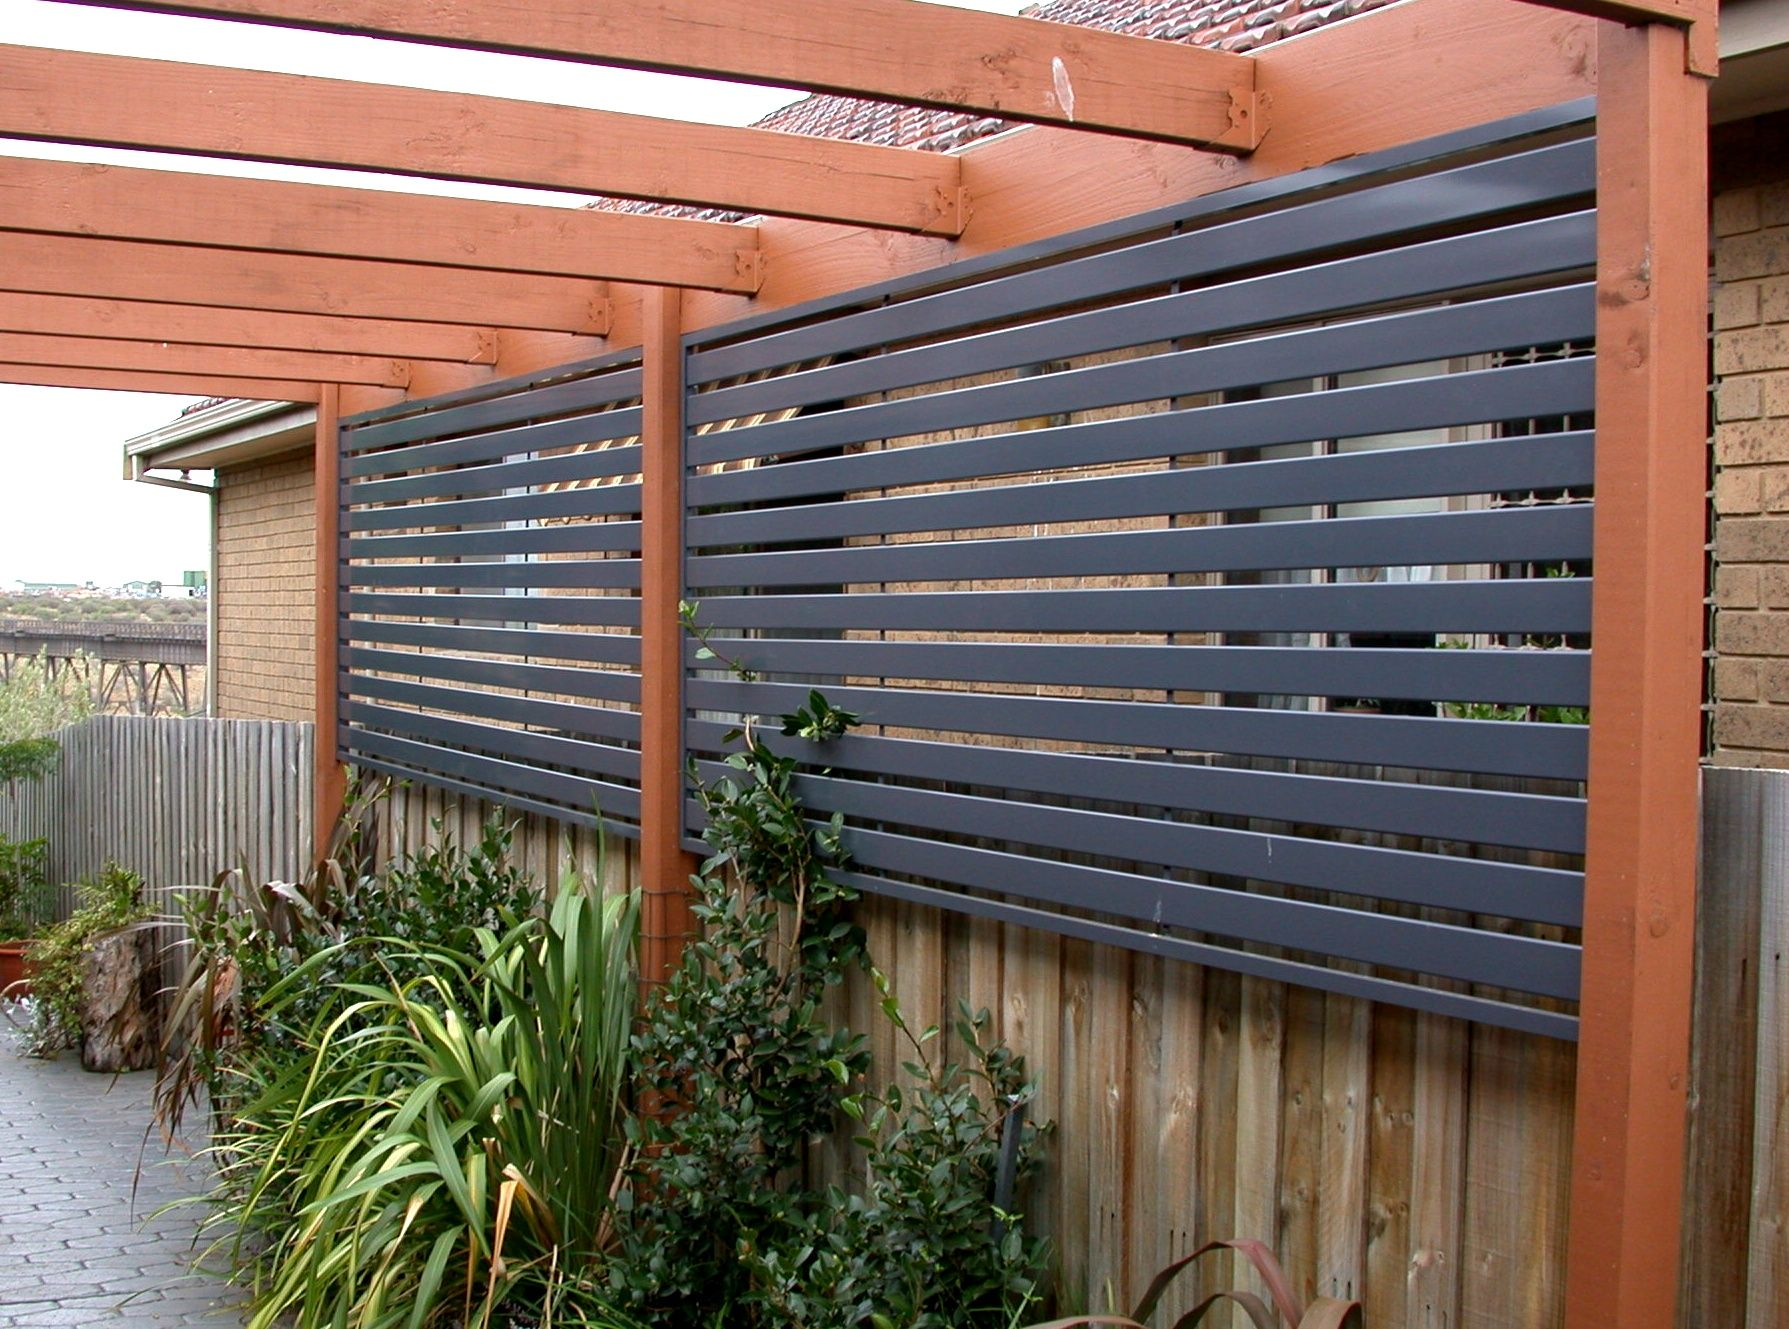 Design Deck Privacy Walls best 25 deck privacy screens ideas on pinterest fence a clever take as robert frost wrote good fences make